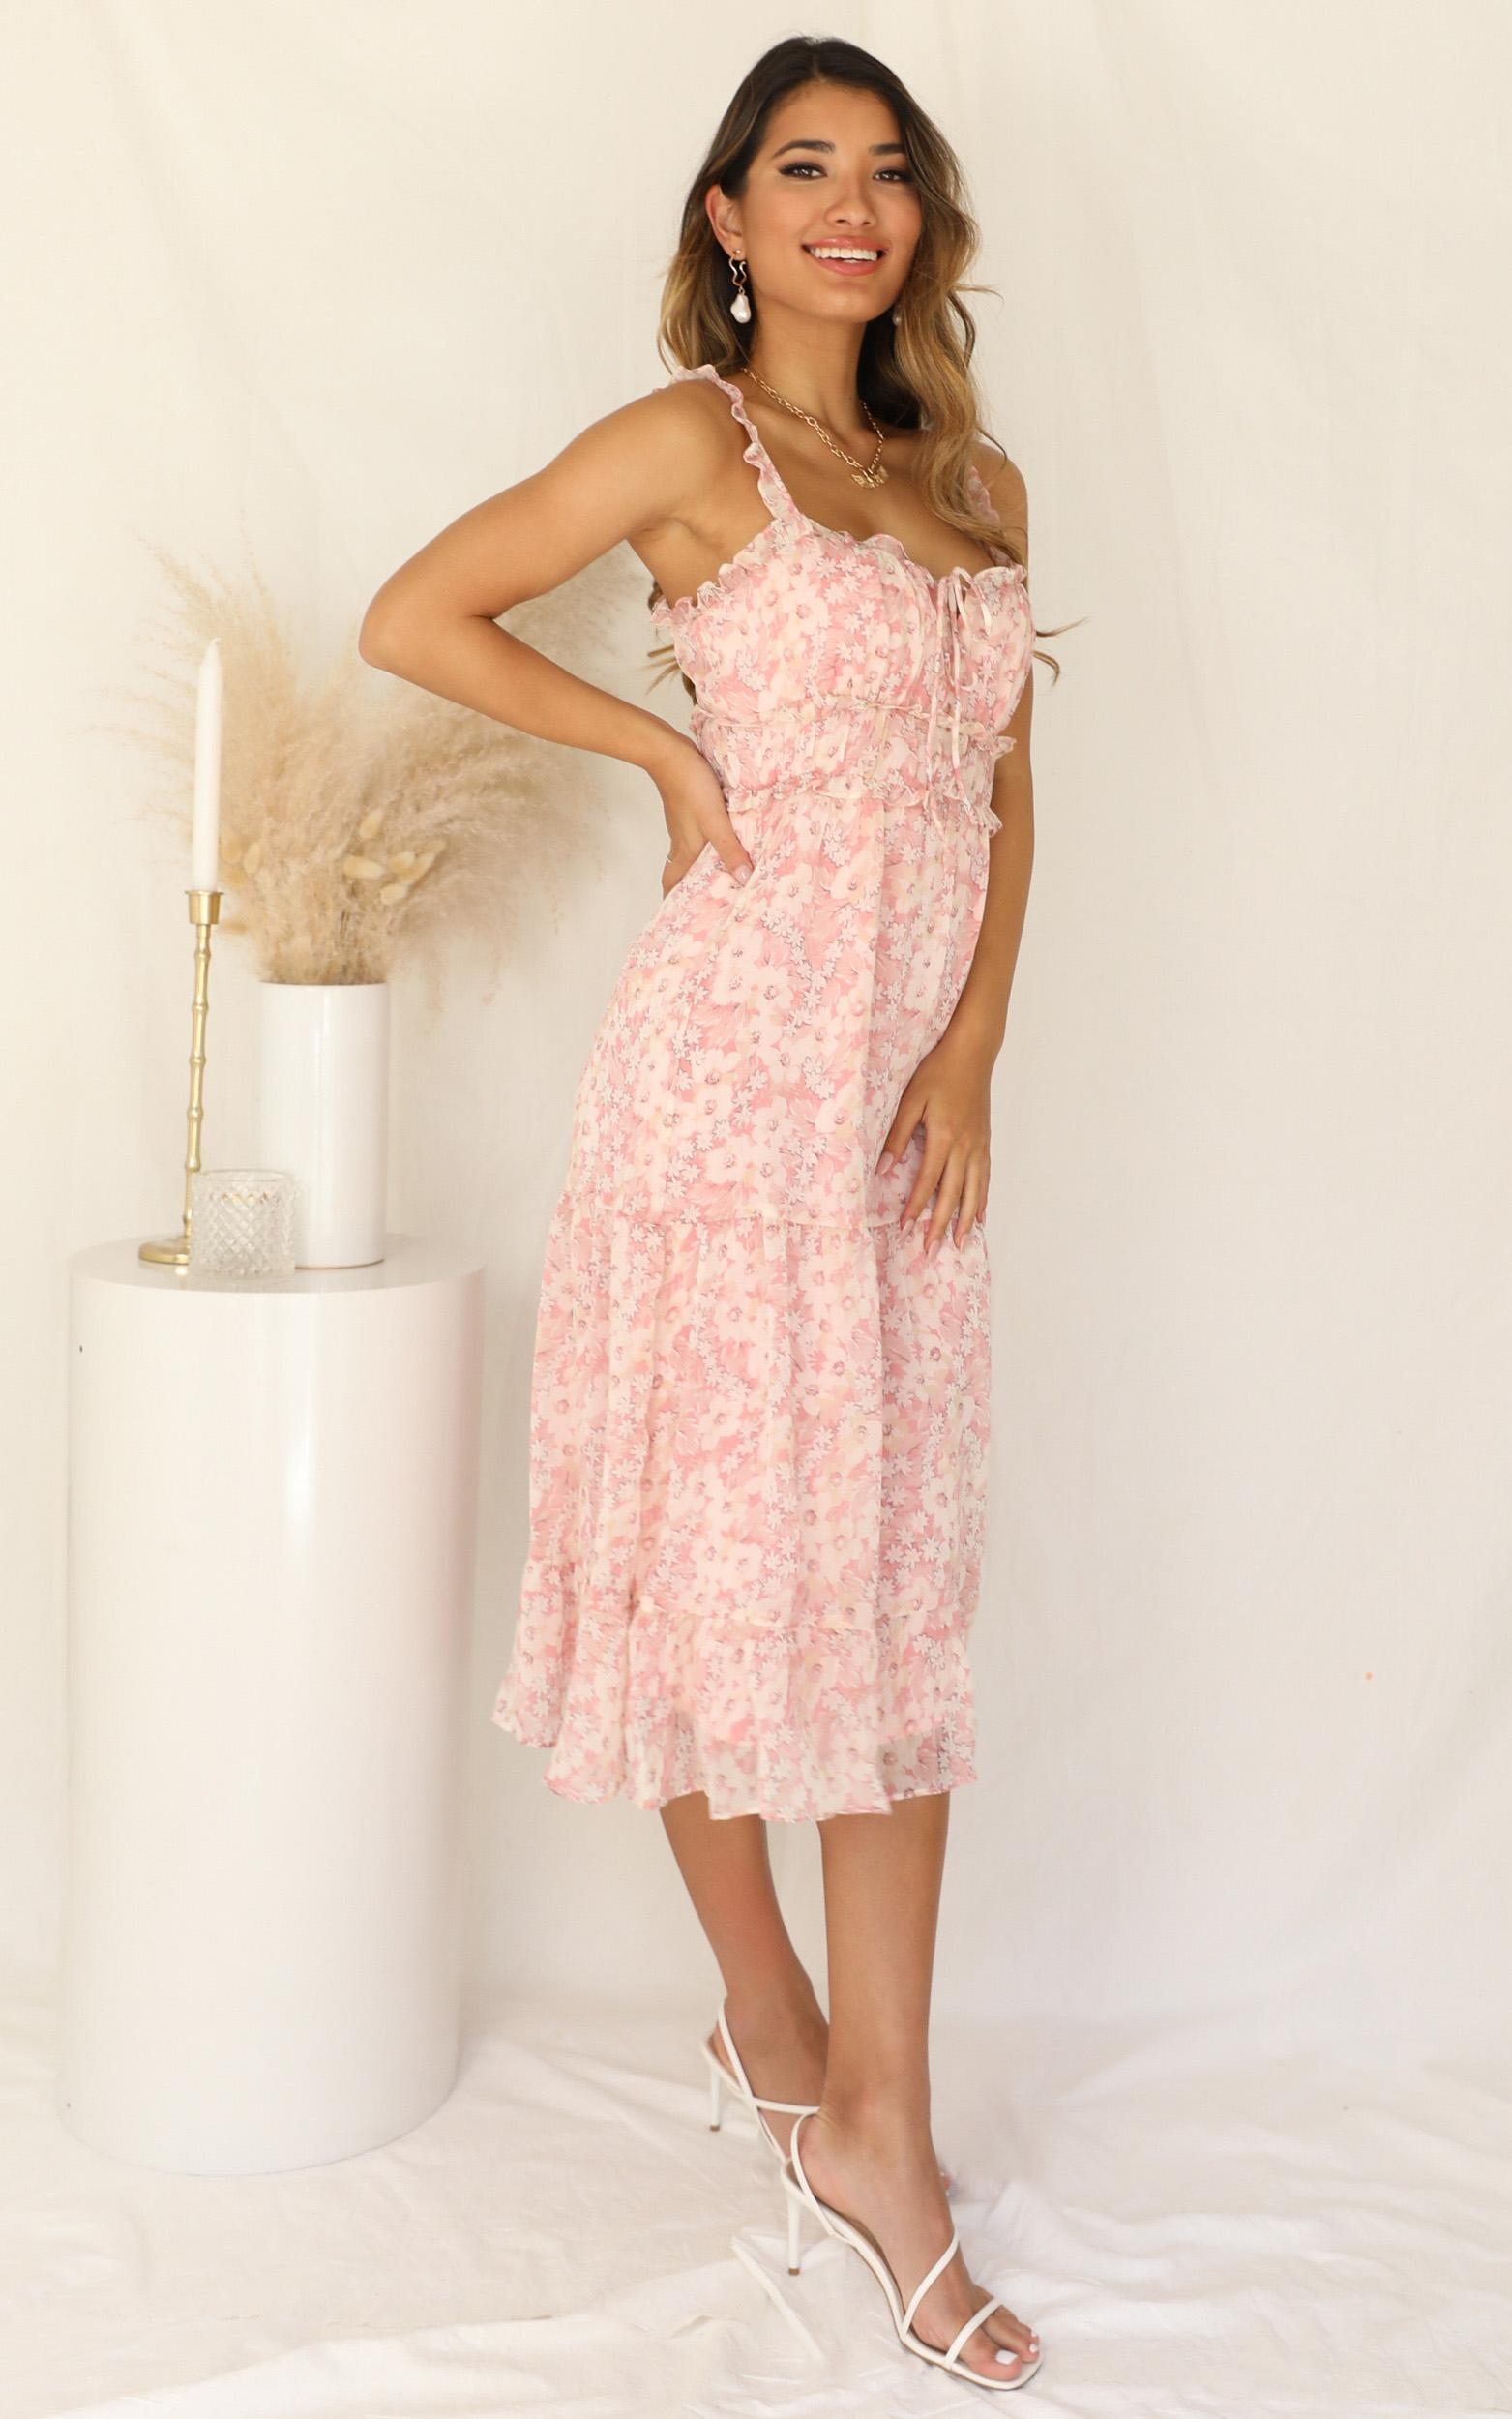 Glorious Morning dress in pink floral - 12 (L), Pink, hi-res image number null